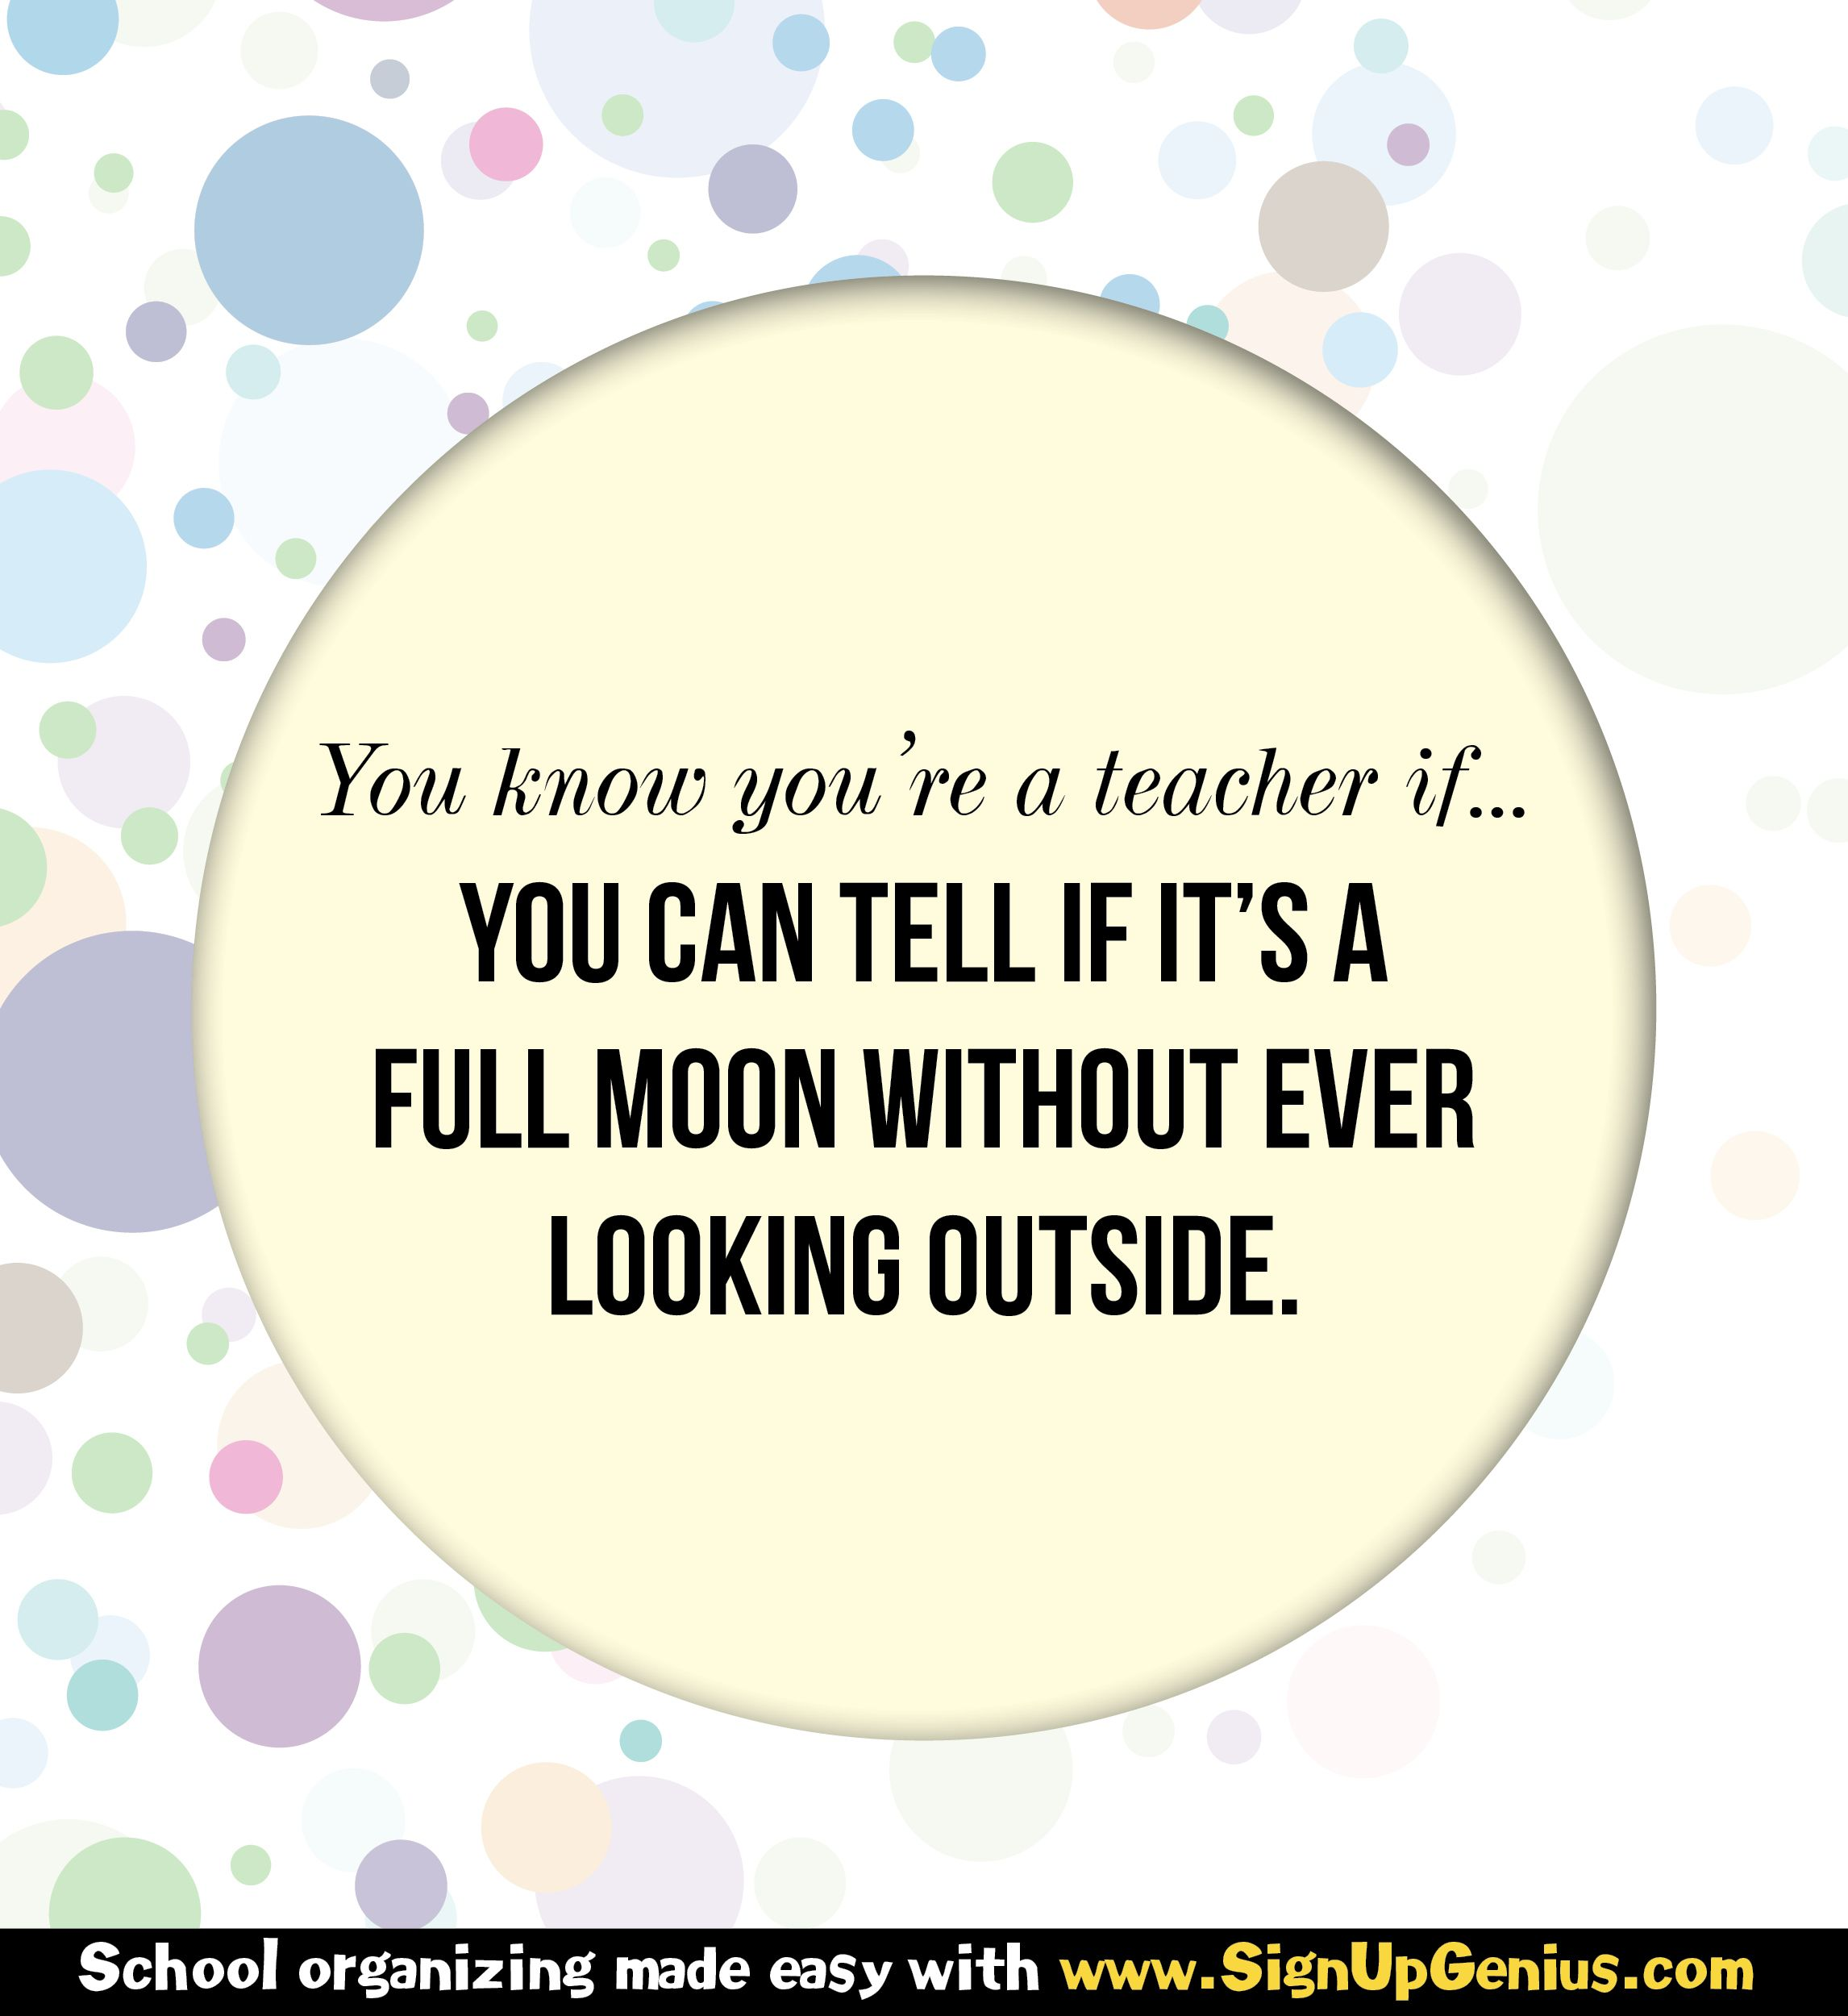 You Know You Re A Teacher If You Can Tell If It S A Full Moon Without Ever Looking Outside Teacher Teaching Teaching Quotes Teaching Humor Teacher Quotes